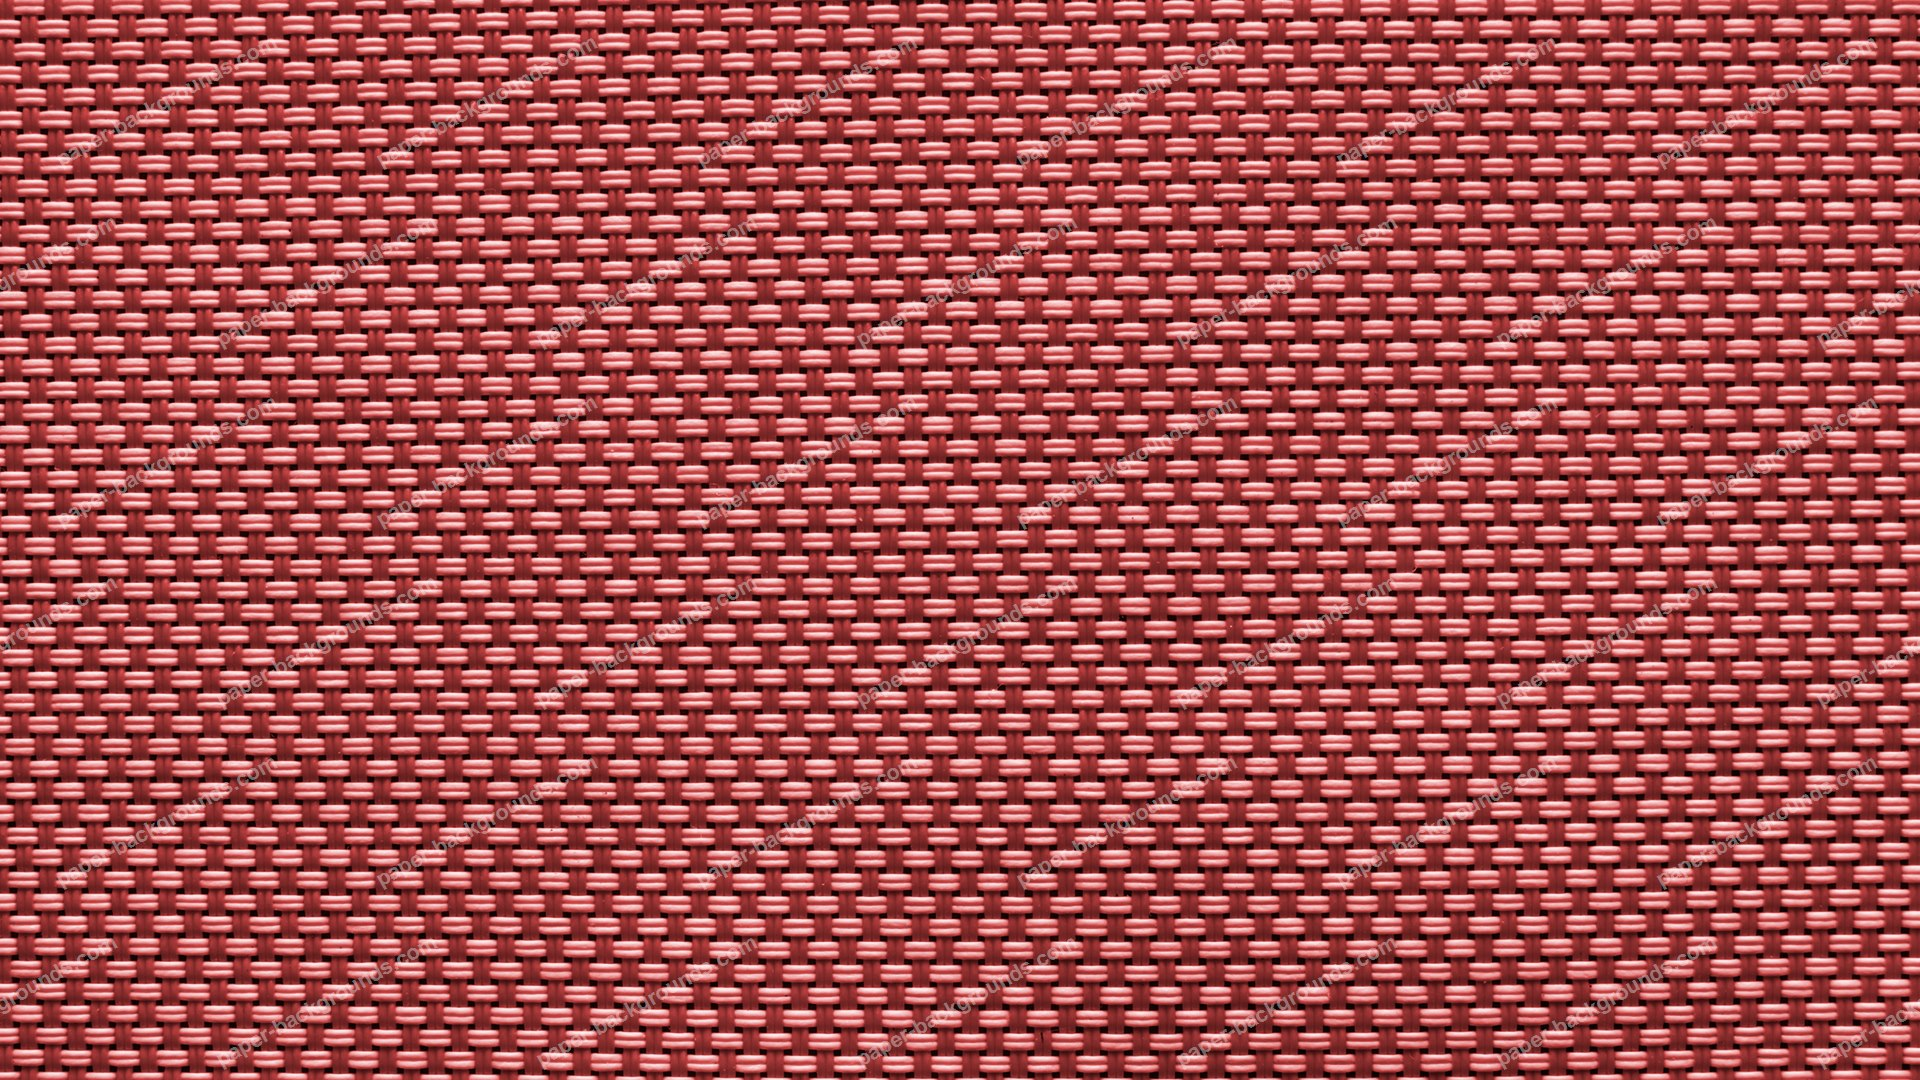 Chequered Red Squares Canvas Texture HD 1920 x 1080p